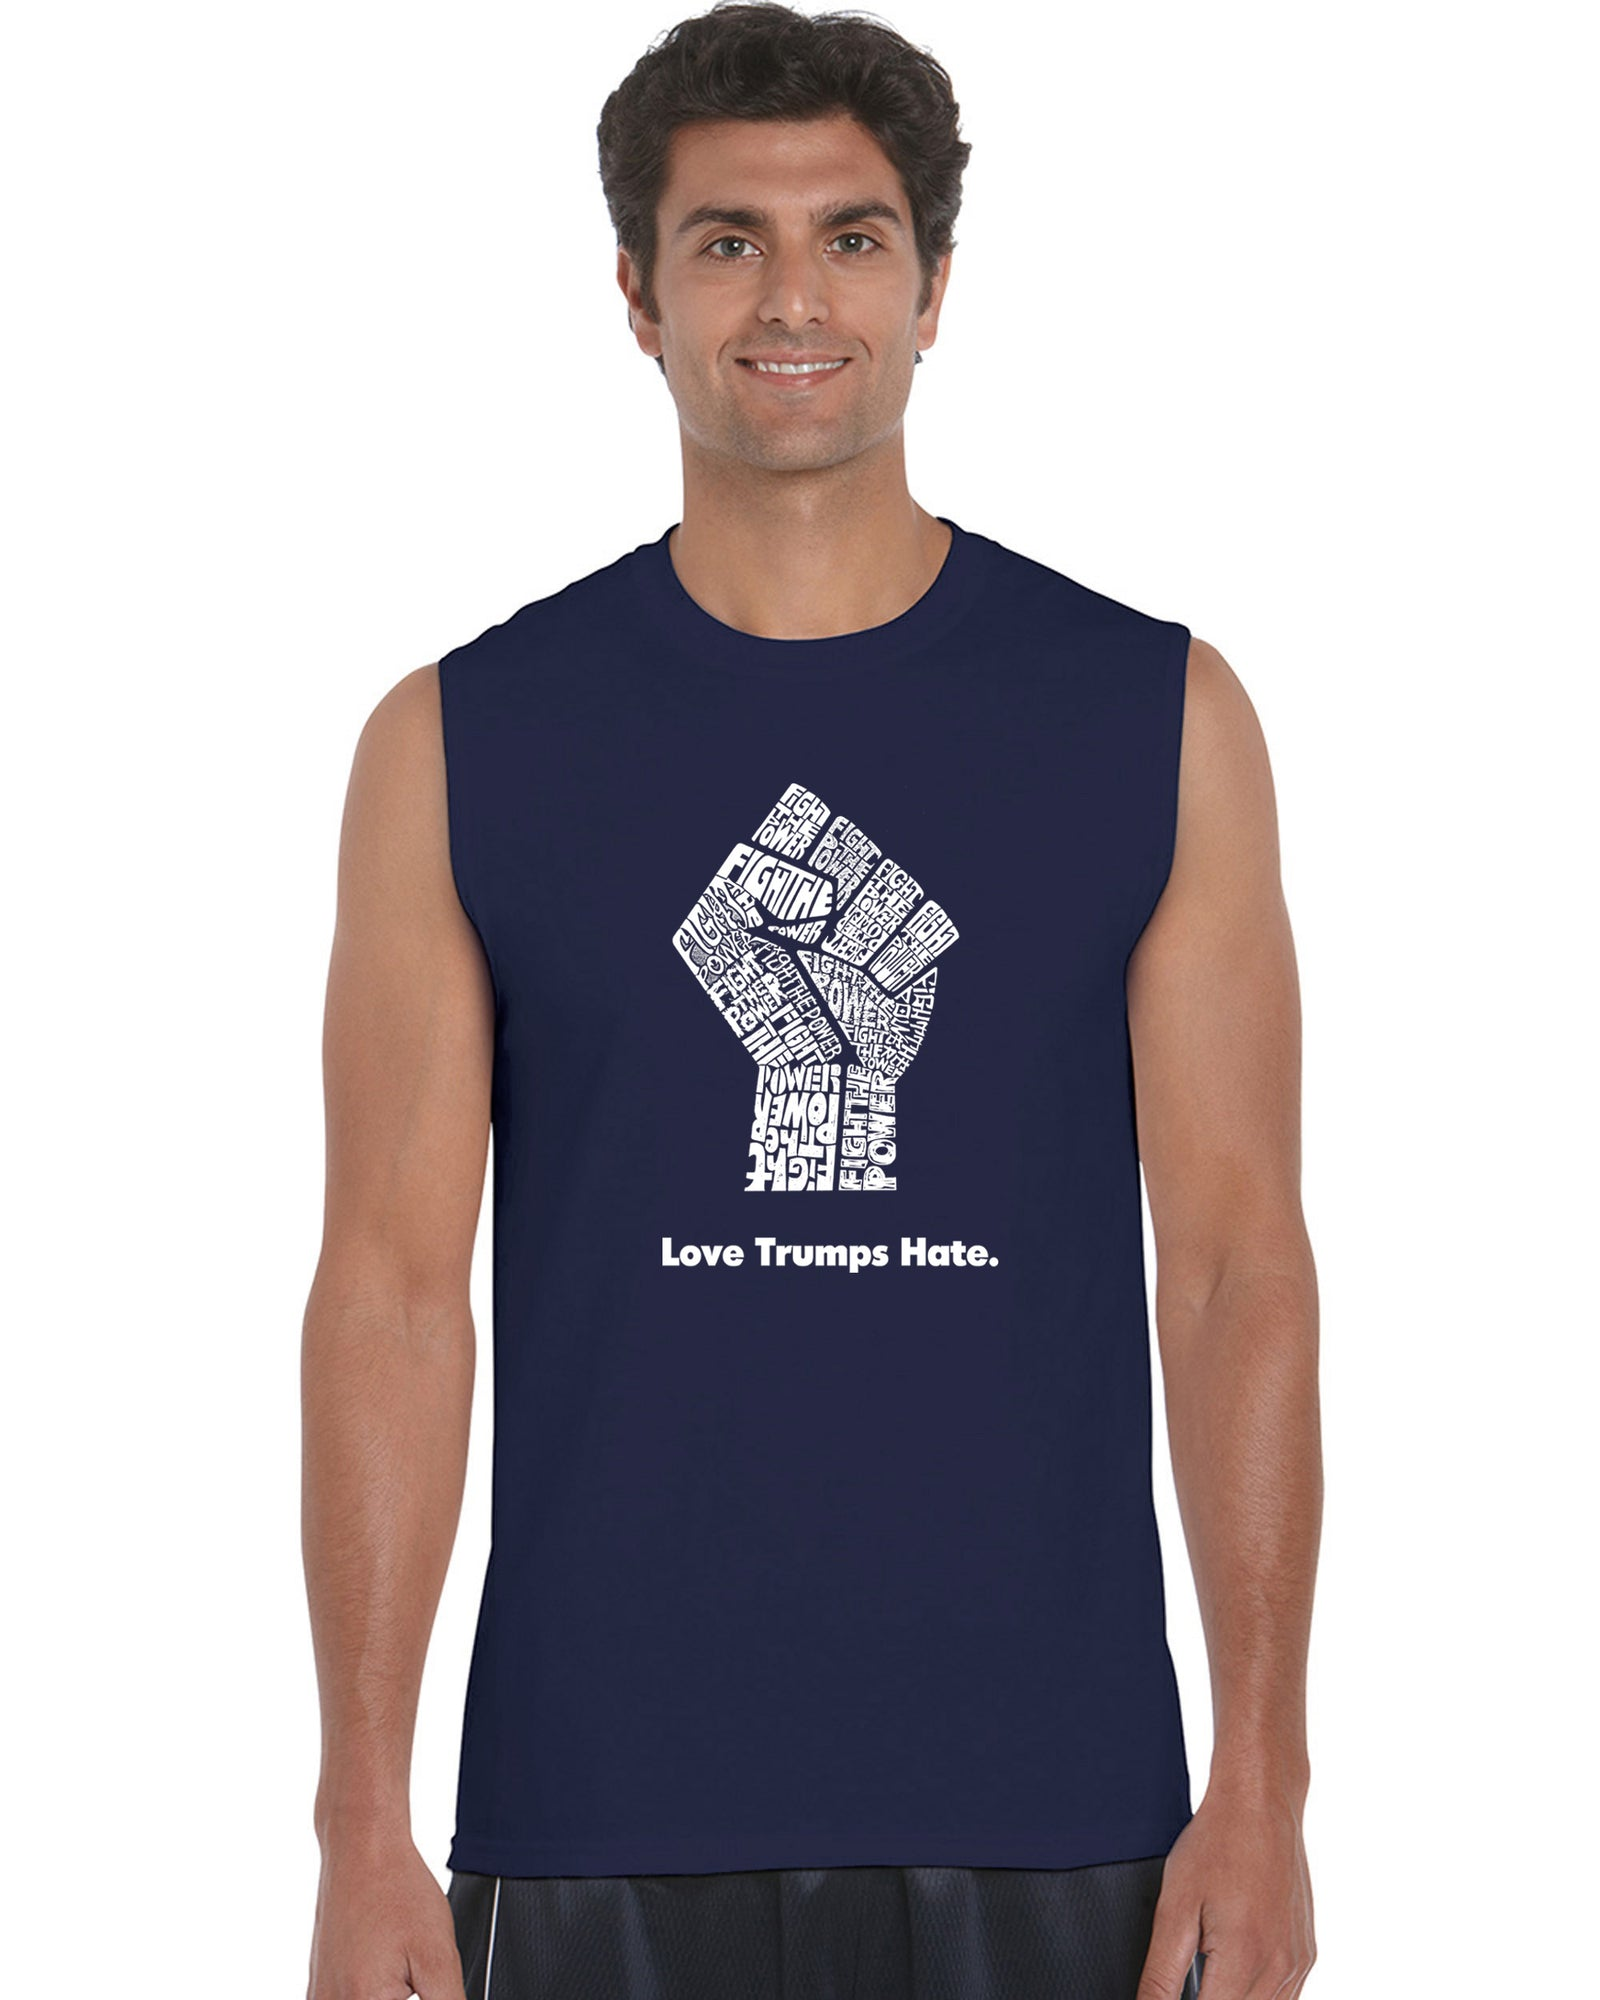 Men's Sleeveless T-shirt - Love Trumps Hate Fist